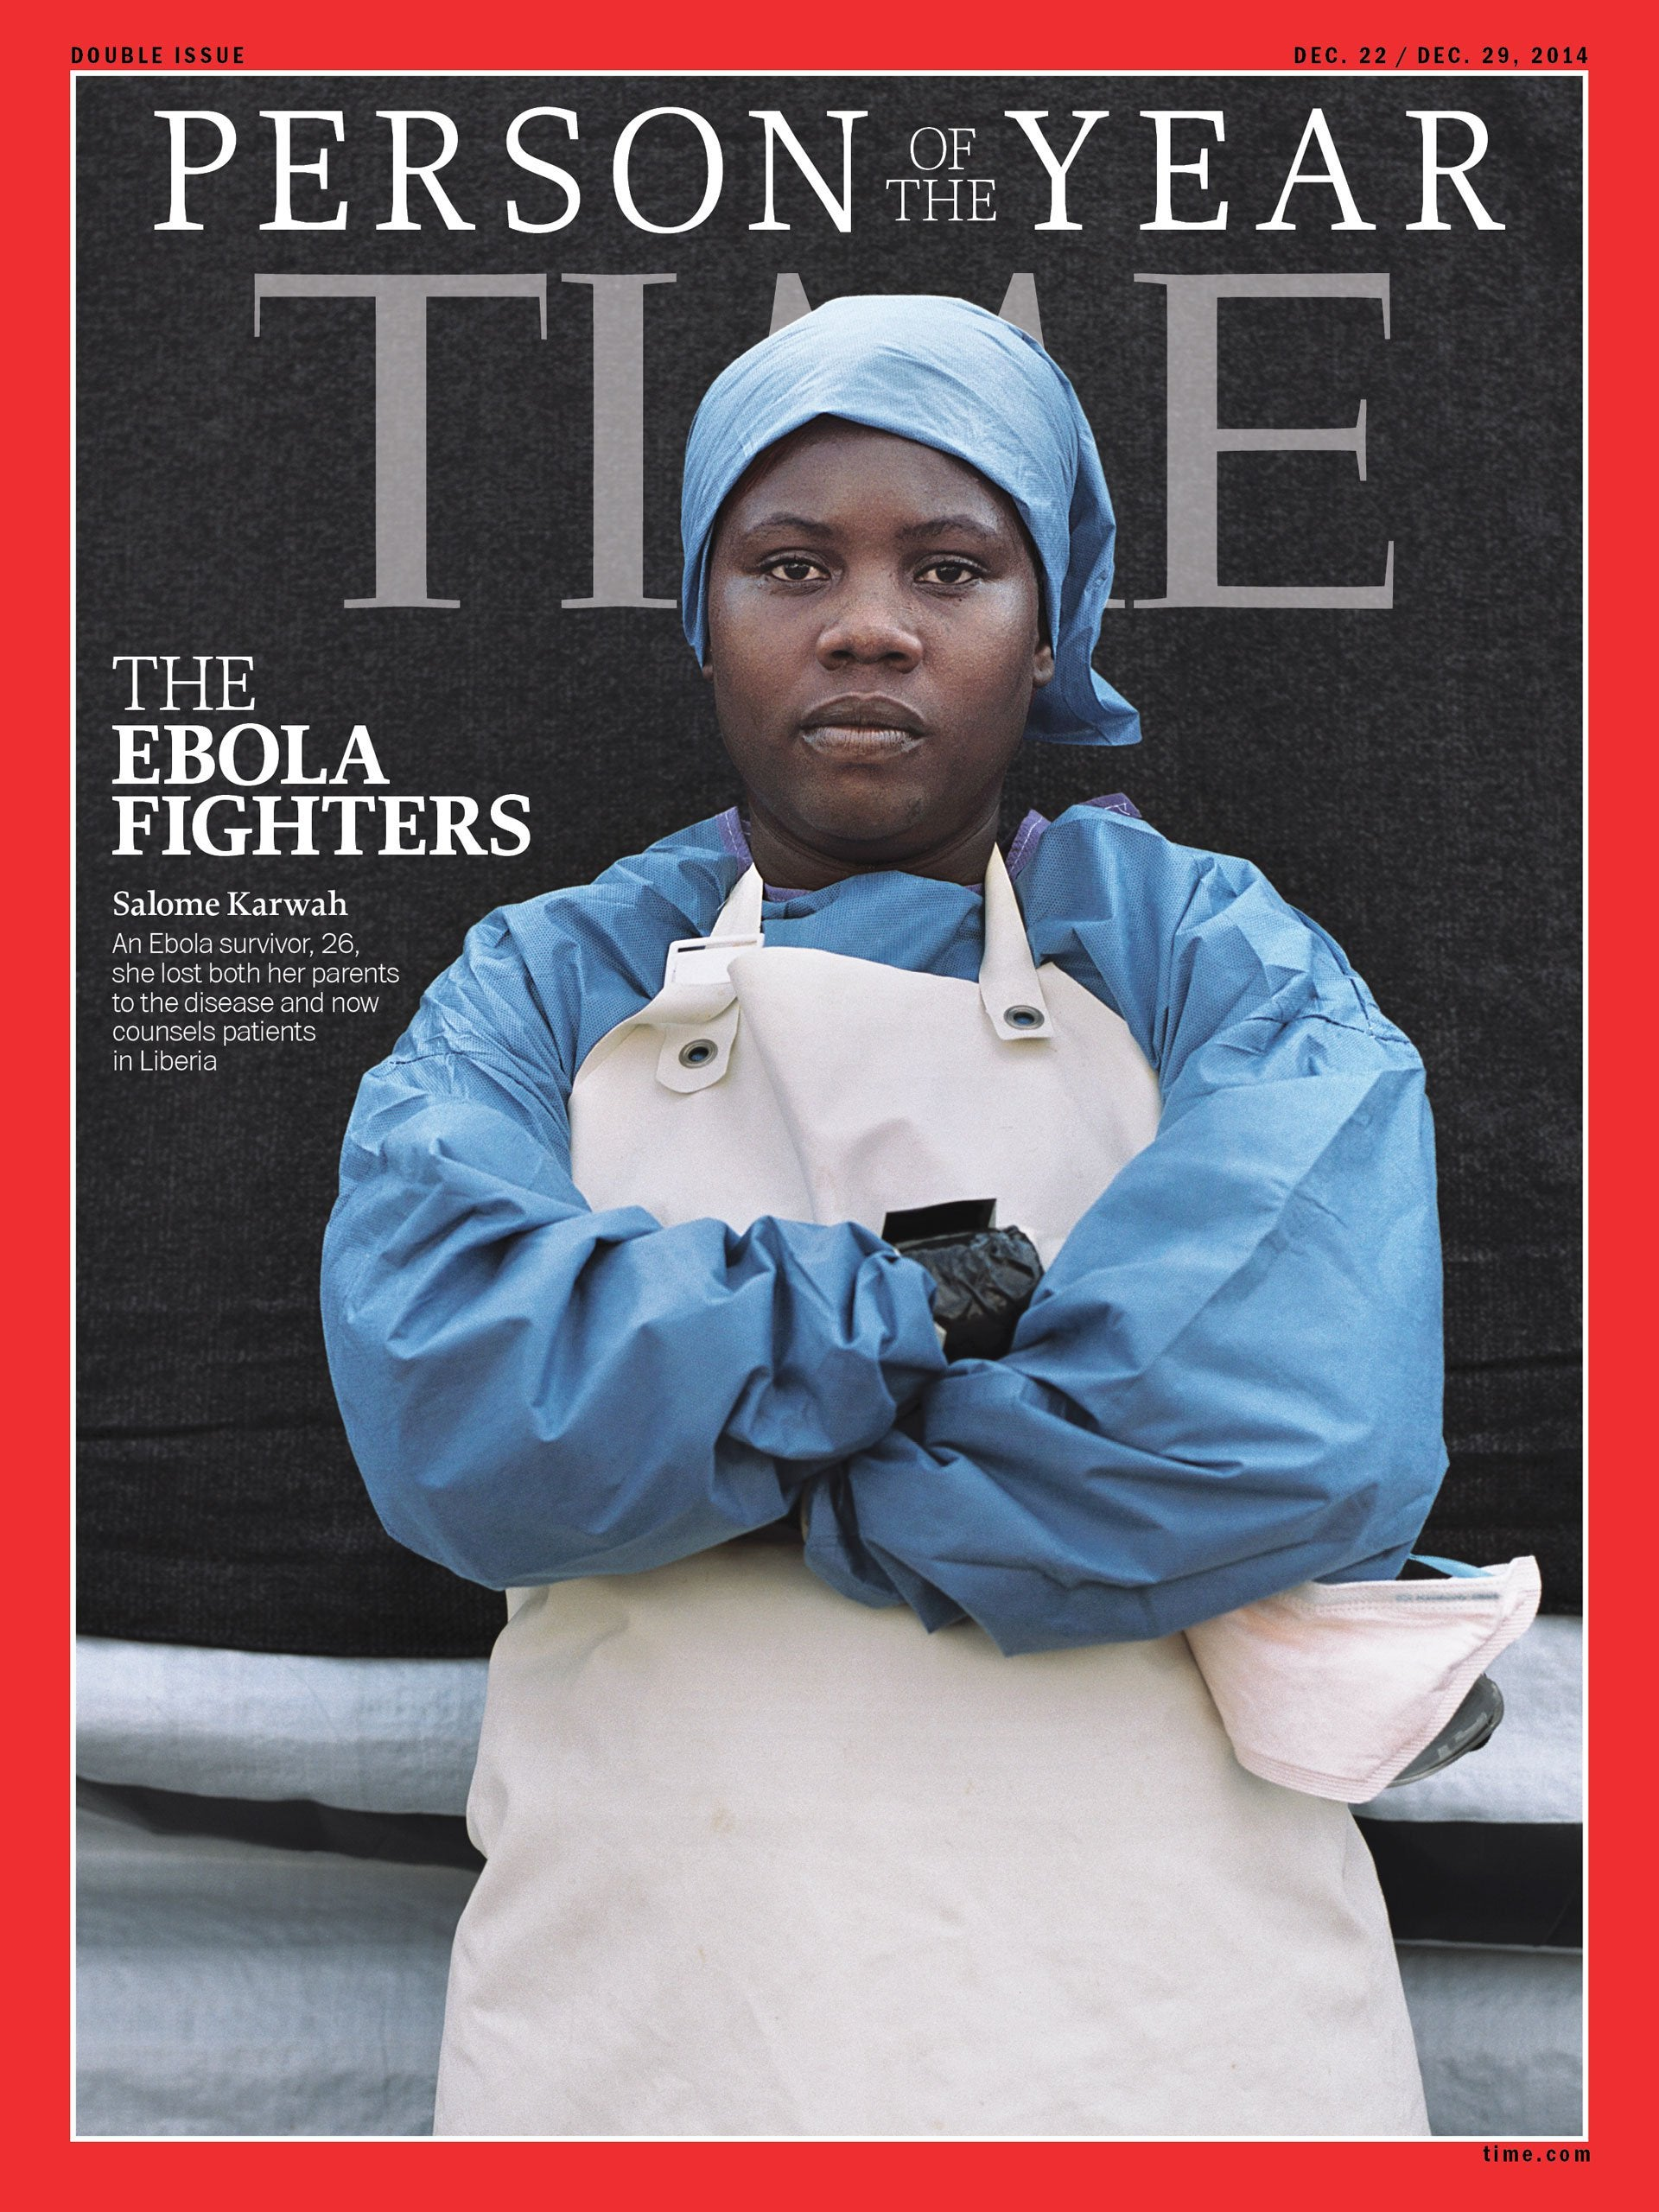 Ebola Survivor Who Was Named TIME's 2014 Person Of The Year Dies In Childbirth